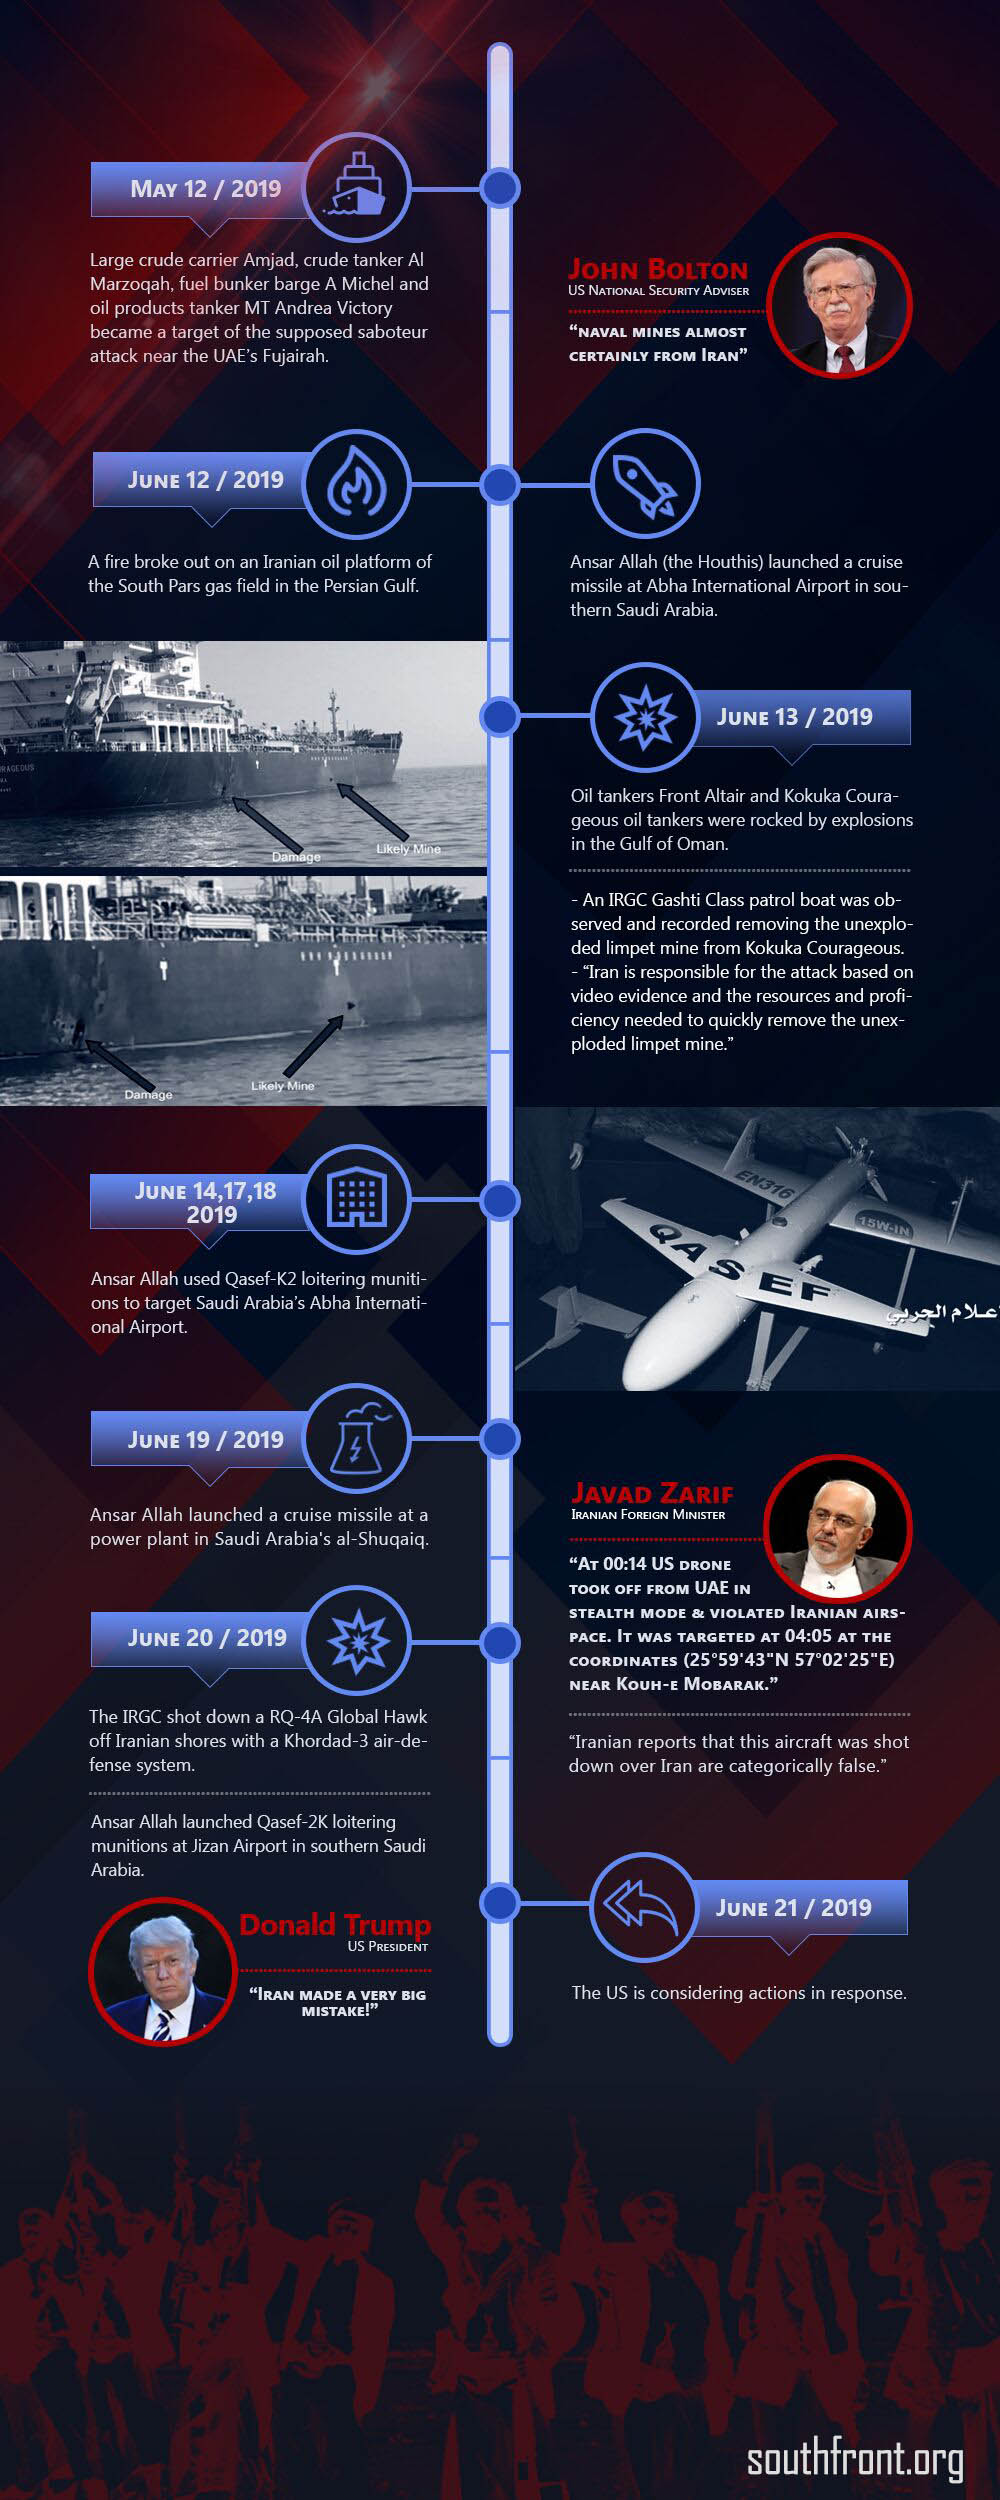 Timeline Of Escalation In Persian Gulf Region (Infographics)